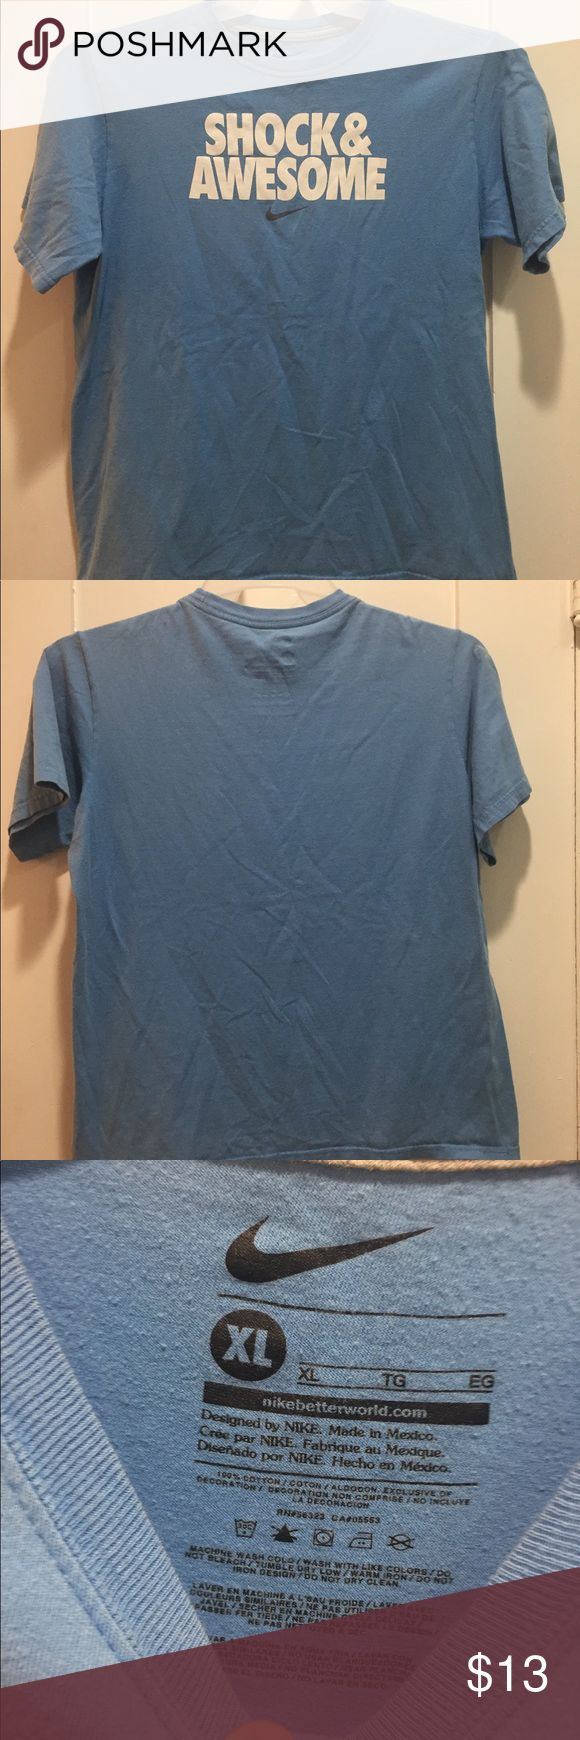 Nike Shock & Awesome Tee Nike Shock & Awesome Short Sleeve Tee. In good condition besides a few stains shown in the last two pictures. Size small boys XL but would fit women's size small. Nike Shirts & Tops Tees - Short Sleeve